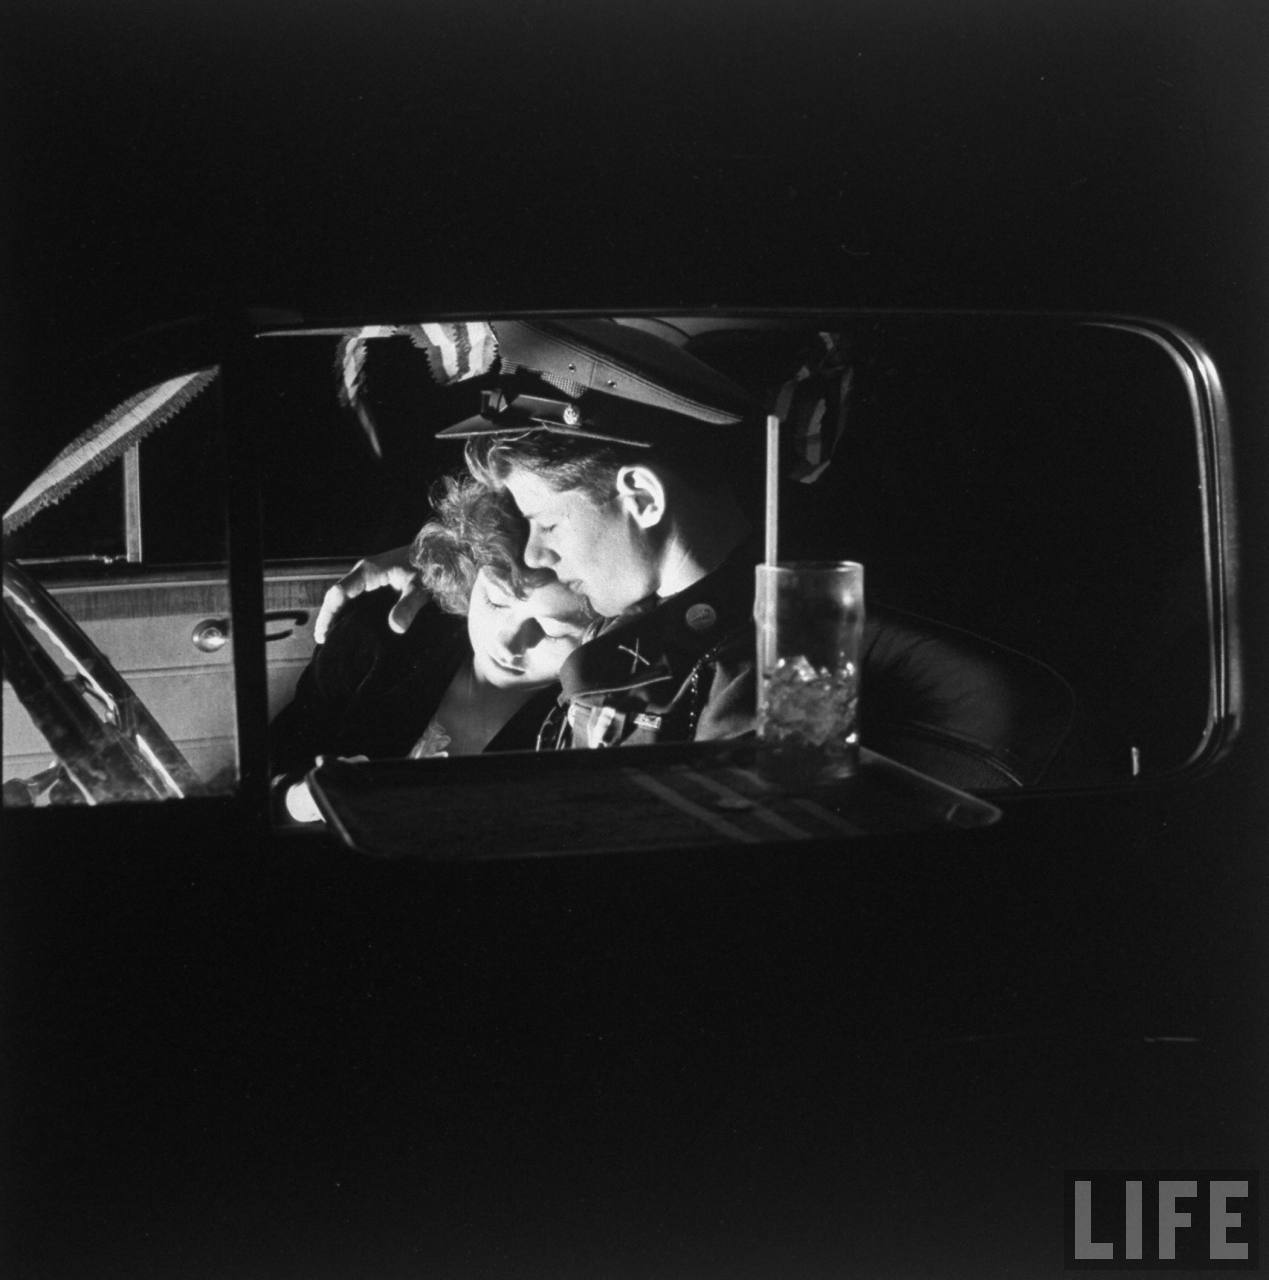 ROTC cadet Lieutenant William Ackenhauser snuggling in front seat of car with his date Joanne Warren, with tray attached to the vehicles open window at the Nu-Drive-In restaurant.